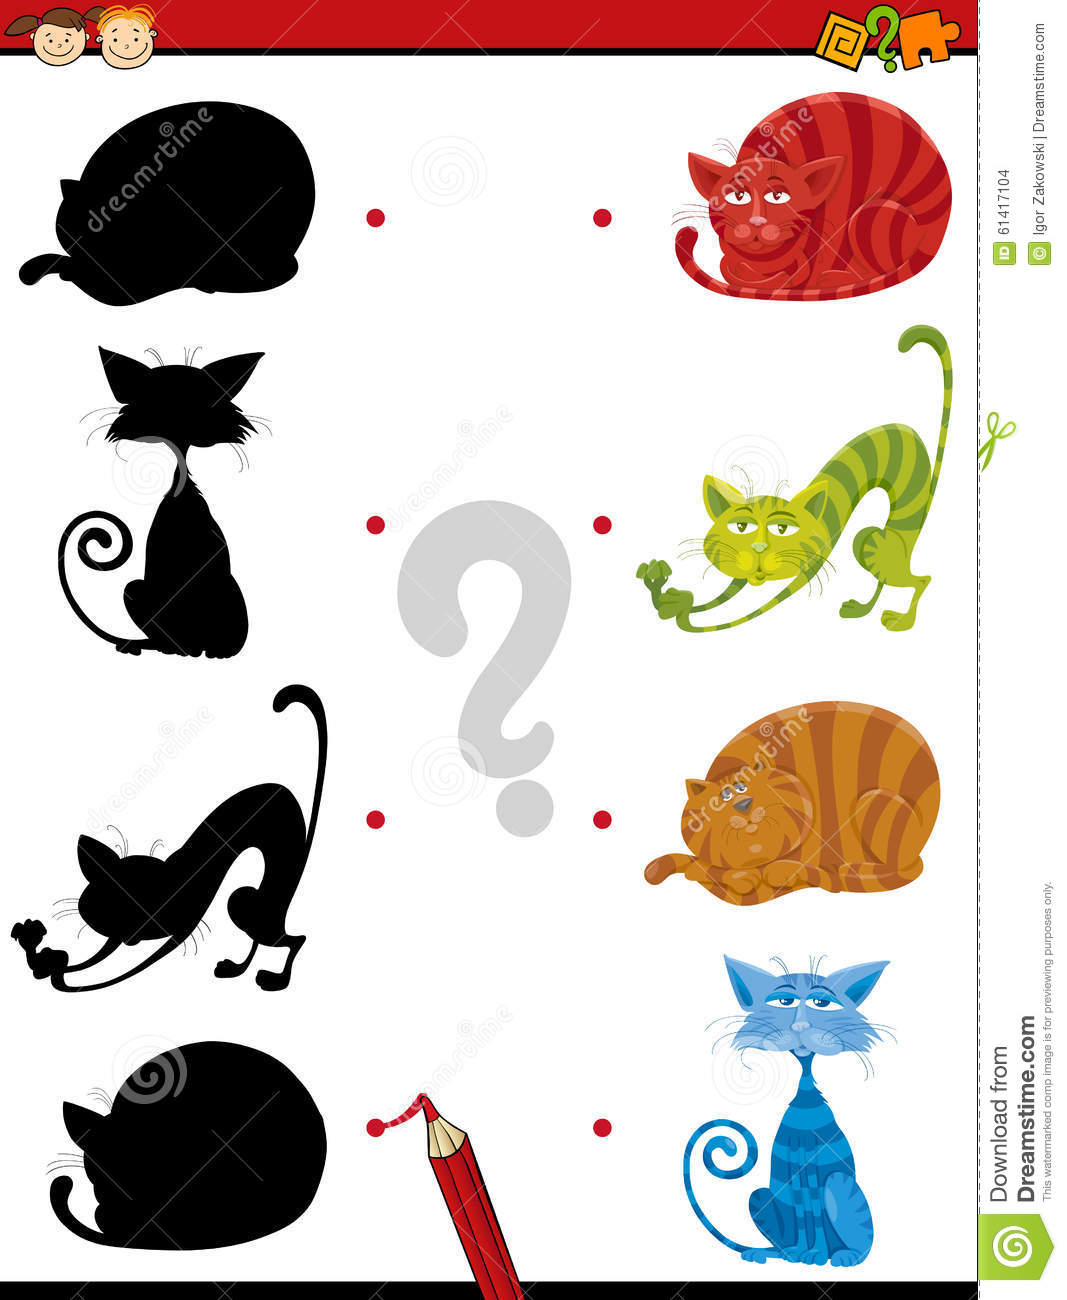 Shadow task with cats for children